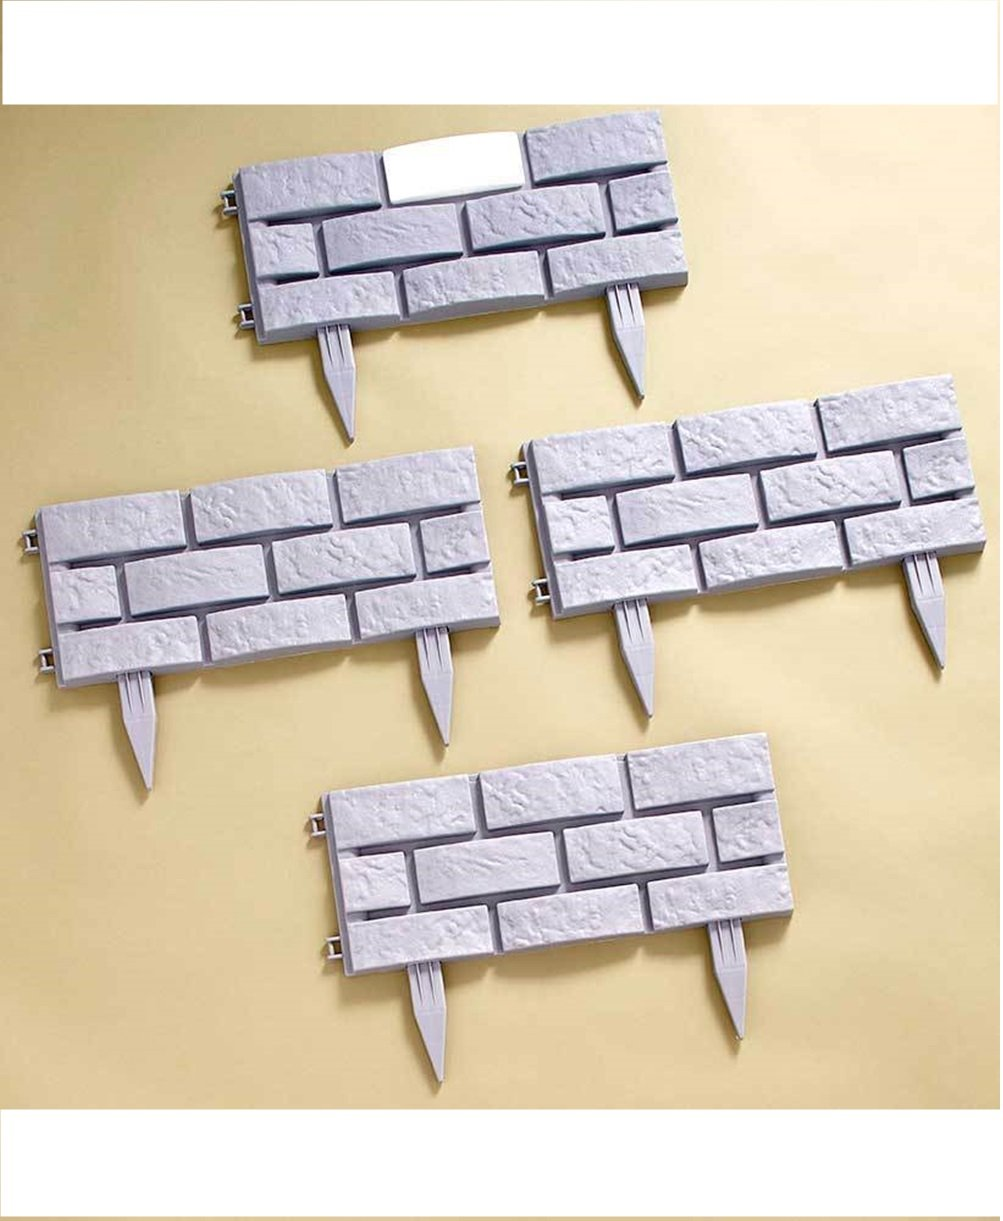 Pro-G 4 Panals Solar Lighted Gray Brick-Look Border Removable Stakes Surround Gardent Tree Decor Night